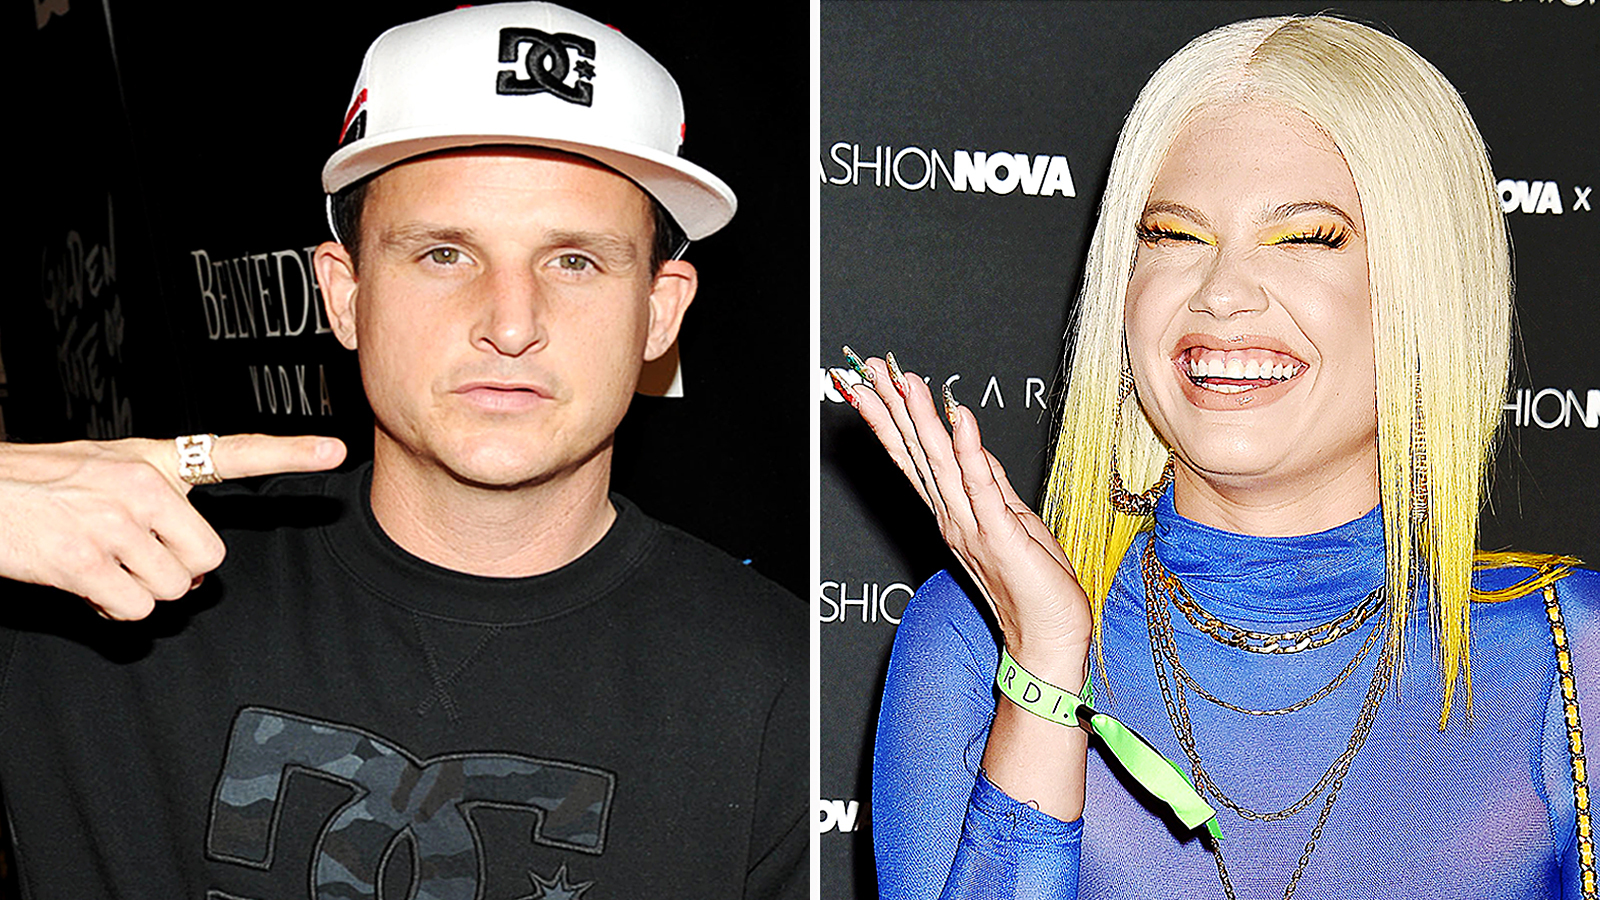 Rob dyrdek dating chanel west coast who is simon cowell dating now 2013